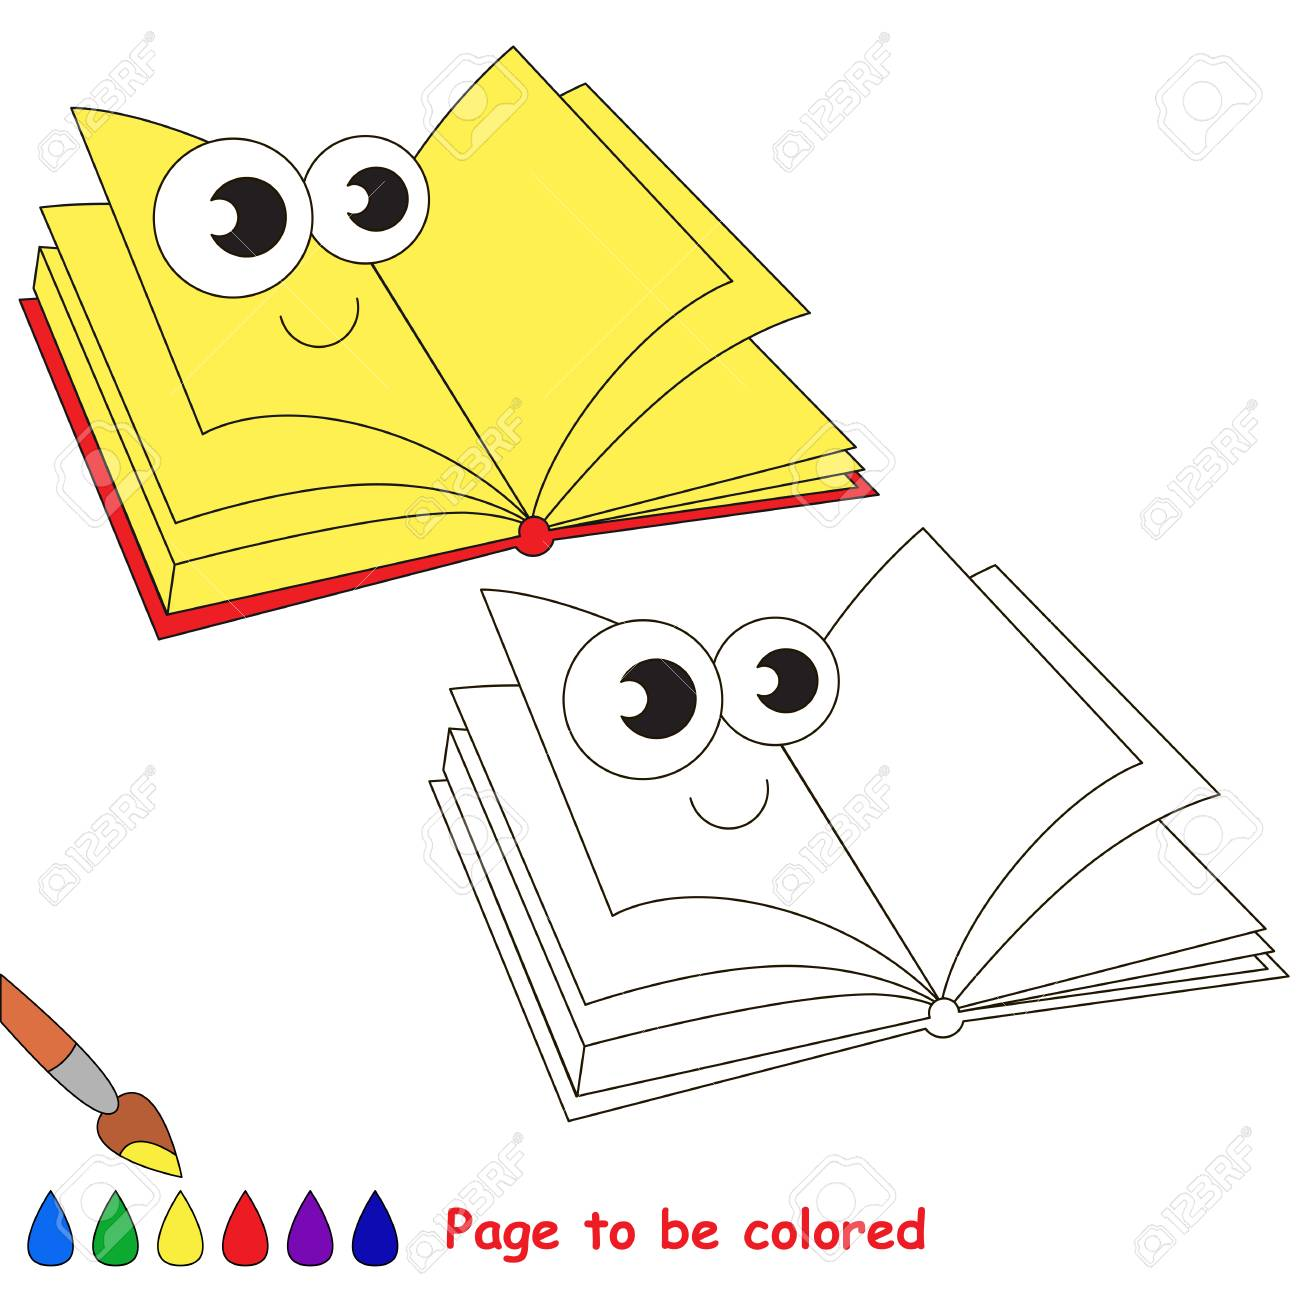 Notebook To Be Colored. Coloring Book To Educate Kids. Learn ...